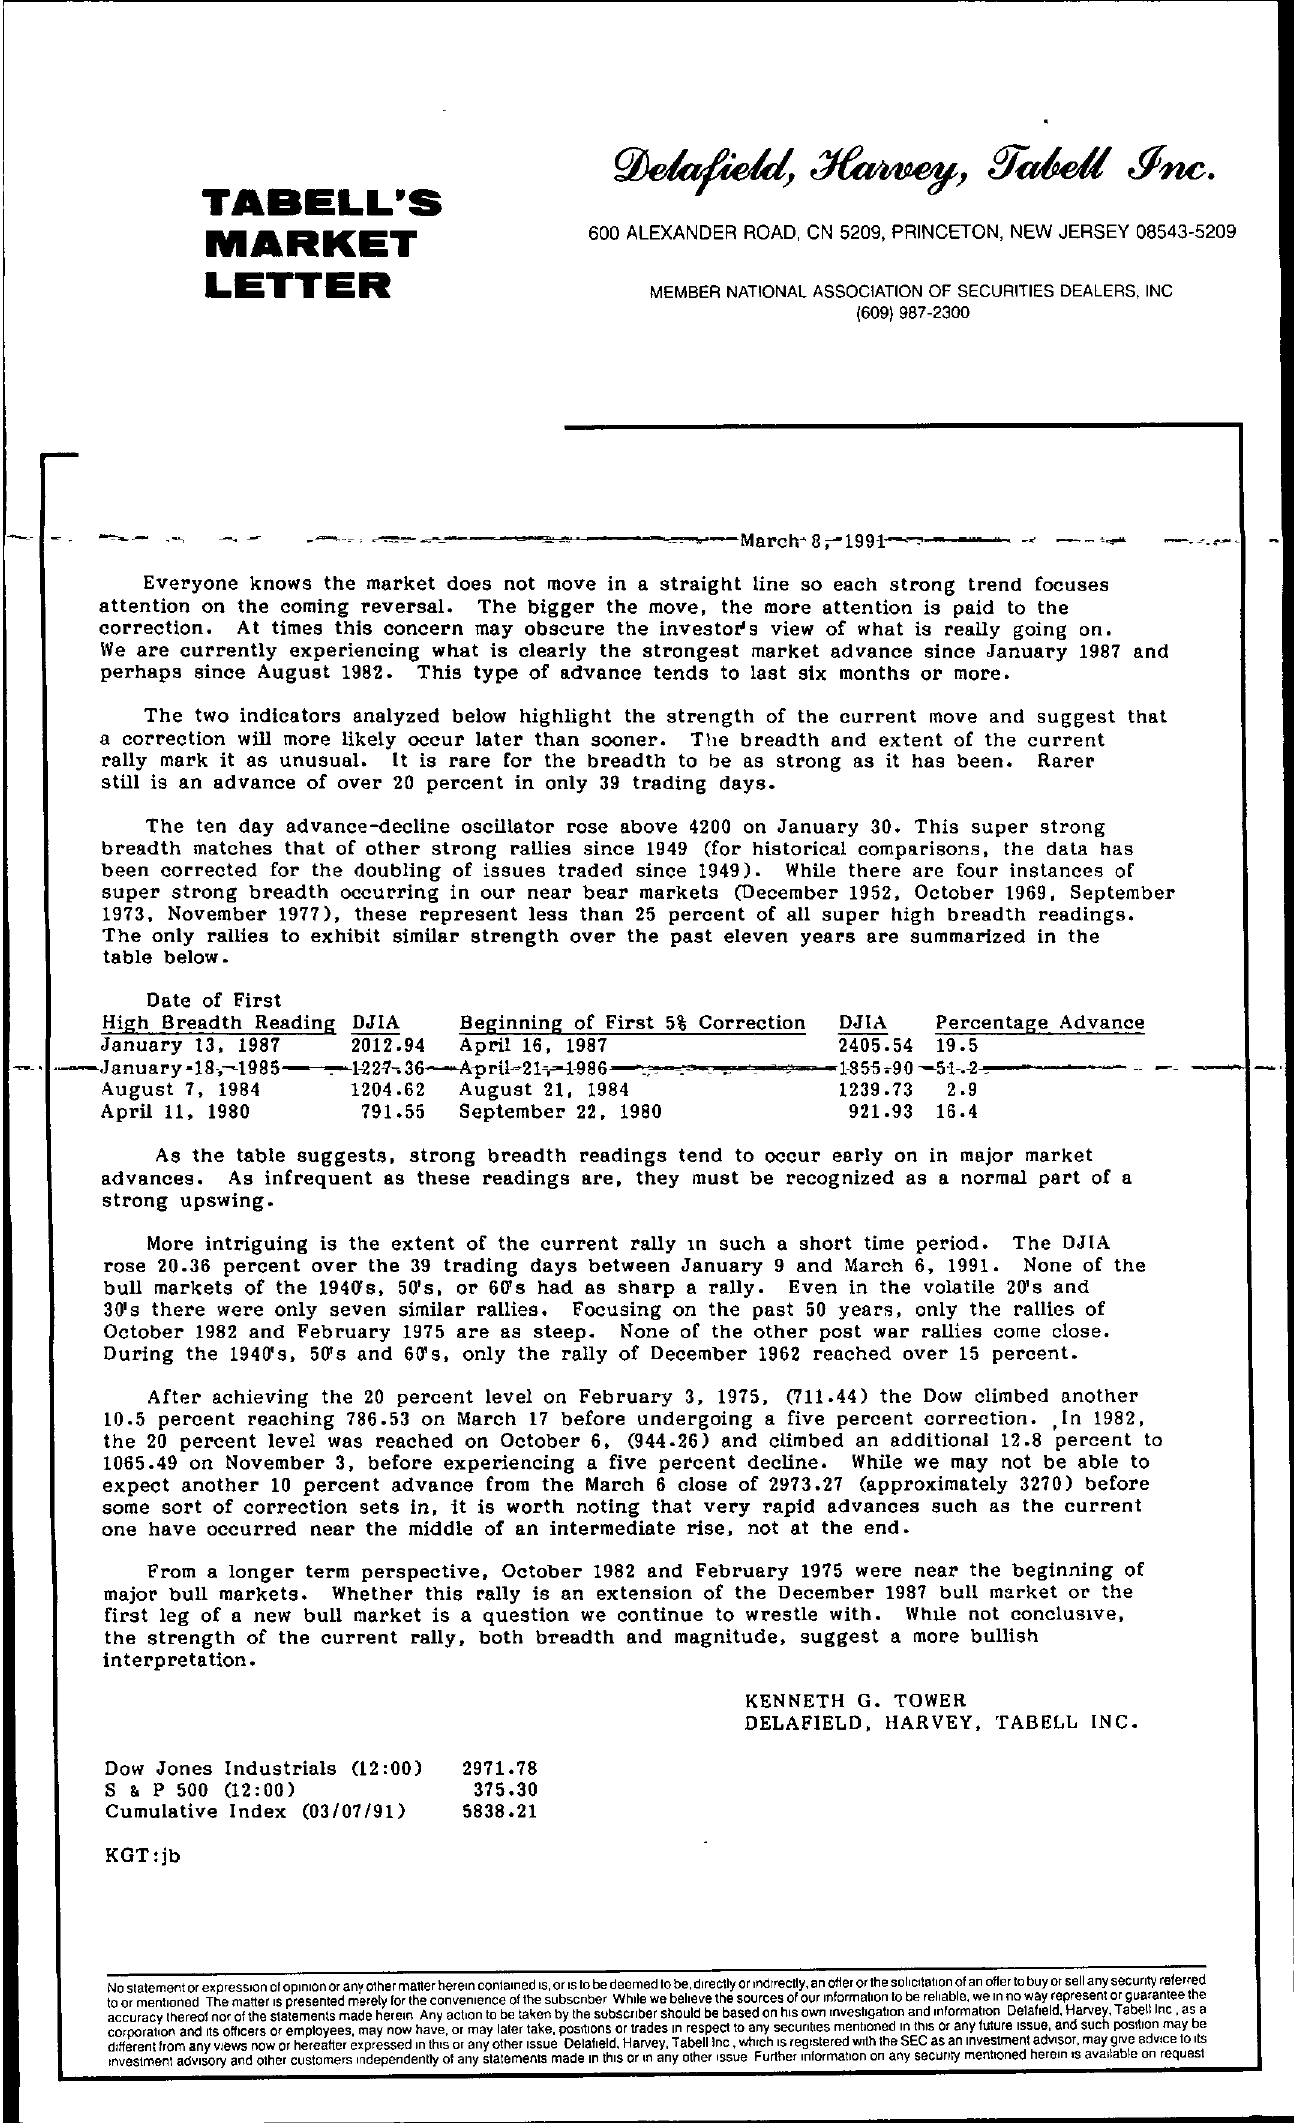 Tabell's Market Letter - March 08, 1991